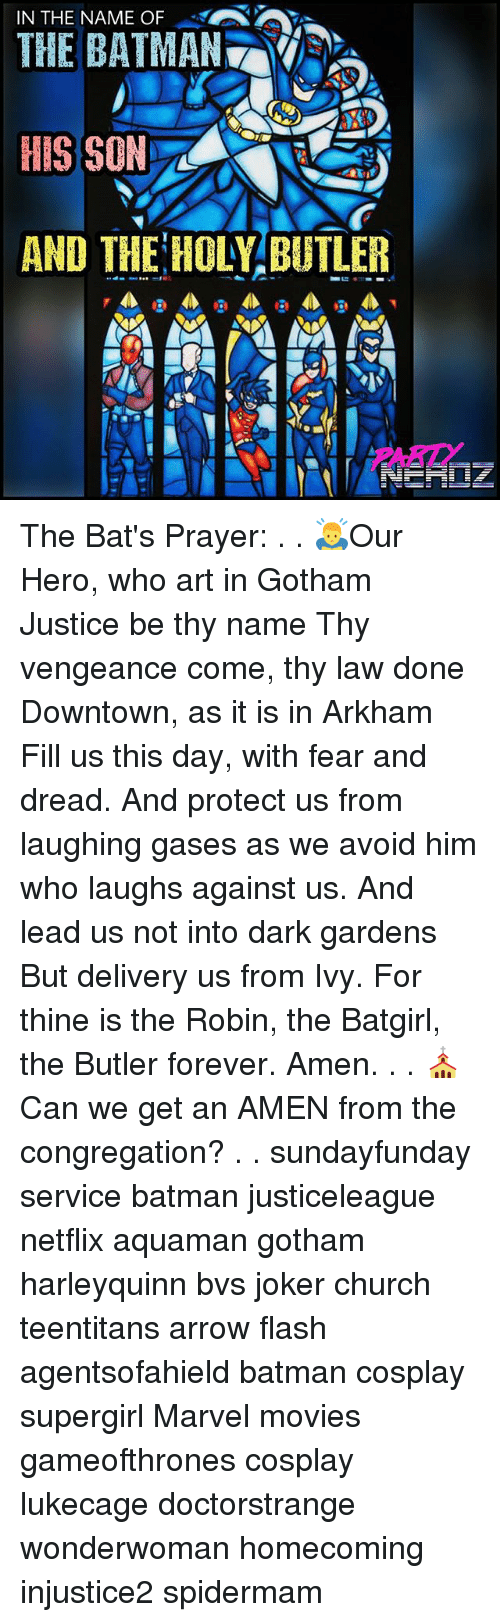 arkham: IN THE NAME O  THE BATMAN  HIS SON  AND THE HOLY BUTLER The Bat's Prayer: . . 🙇Our Hero, who art in Gotham Justice be thy name Thy vengeance come, thy law done Downtown, as it is in Arkham Fill us this day, with fear and dread. And protect us from laughing gases as we avoid him who laughs against us. And lead us not into dark gardens But delivery us from Ivy. For thine is the Robin, the Batgirl, the Butler forever. Amen. . . ⛪Can we get an AMEN from the congregation? . . sundayfunday service batman justiceleague netflix aquaman gotham harleyquinn bvs joker church teentitans arrow flash agentsofahield batman cosplay supergirl Marvel movies gameofthrones cosplay lukecage doctorstrange wonderwoman homecoming injustice2 spidermam